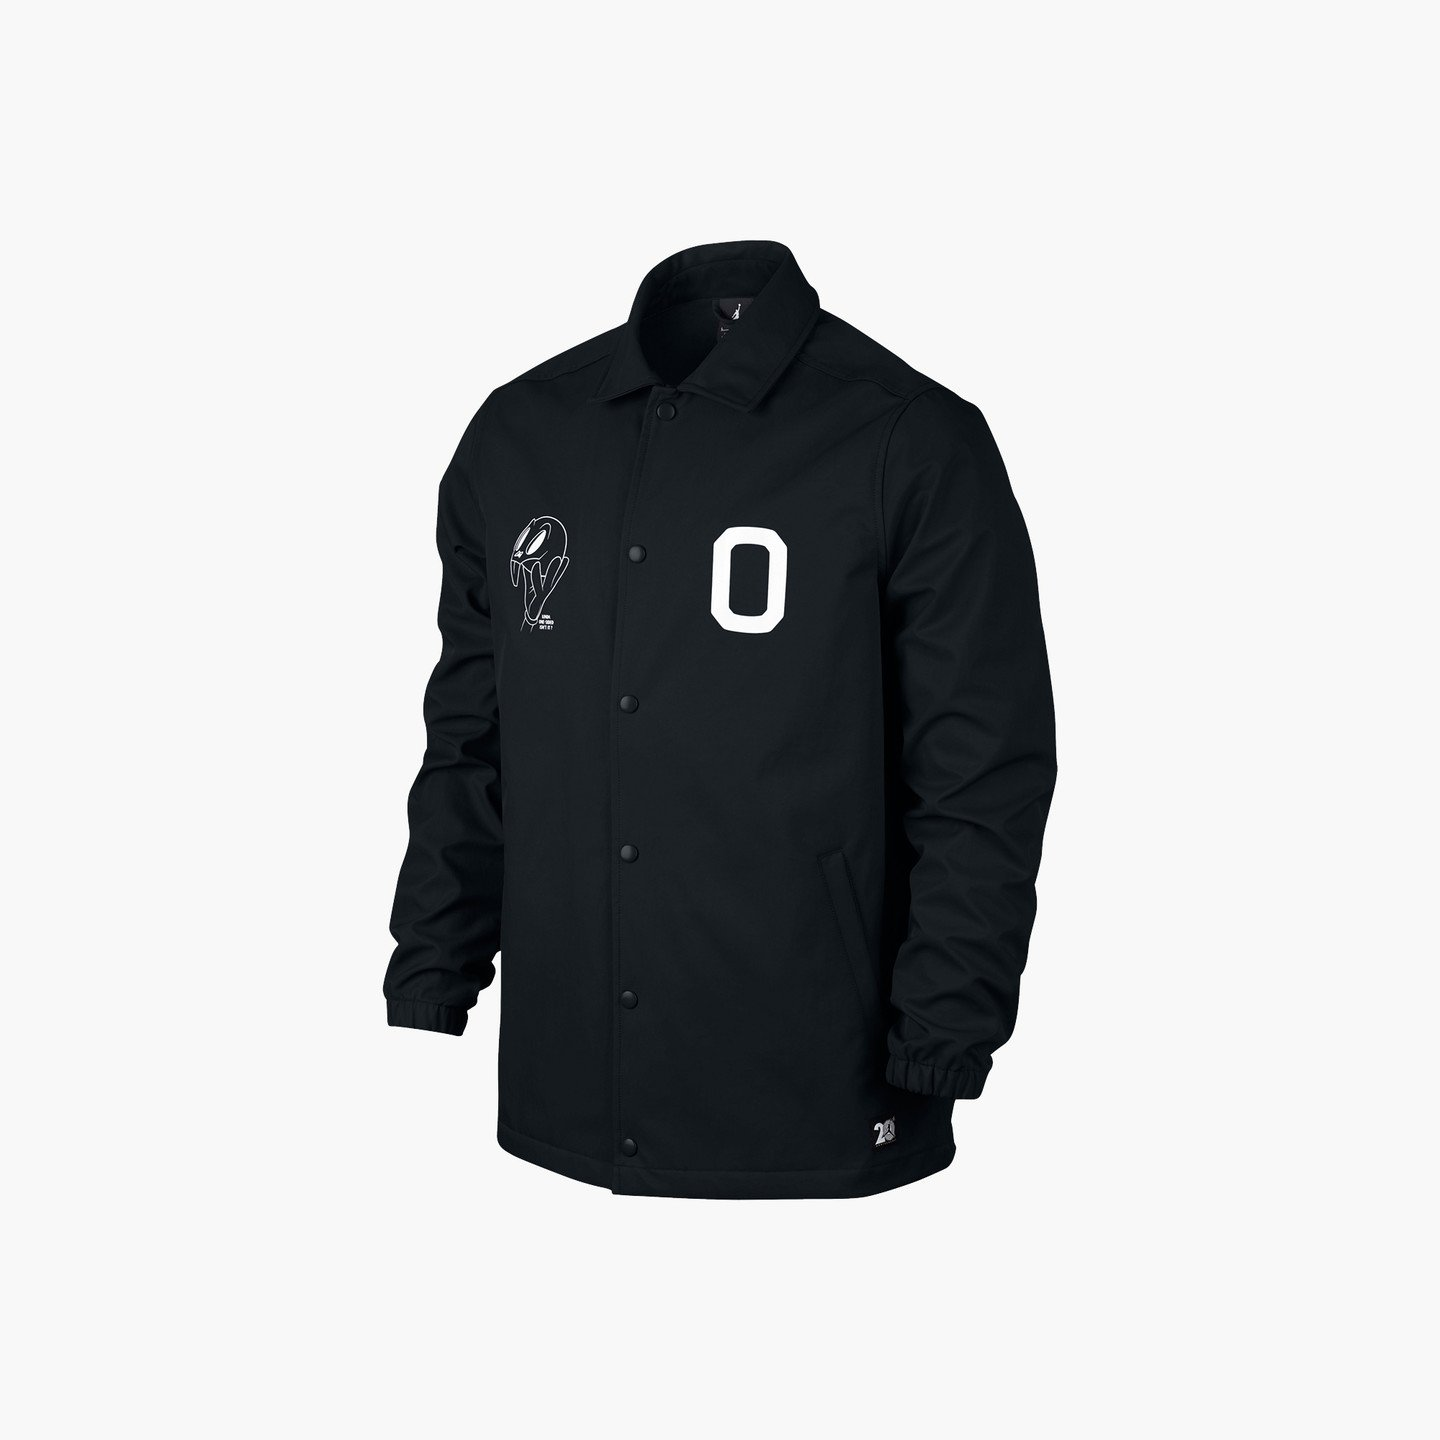 Jordan Air Jordan 11 Coach Jacket Black / White 819119-010